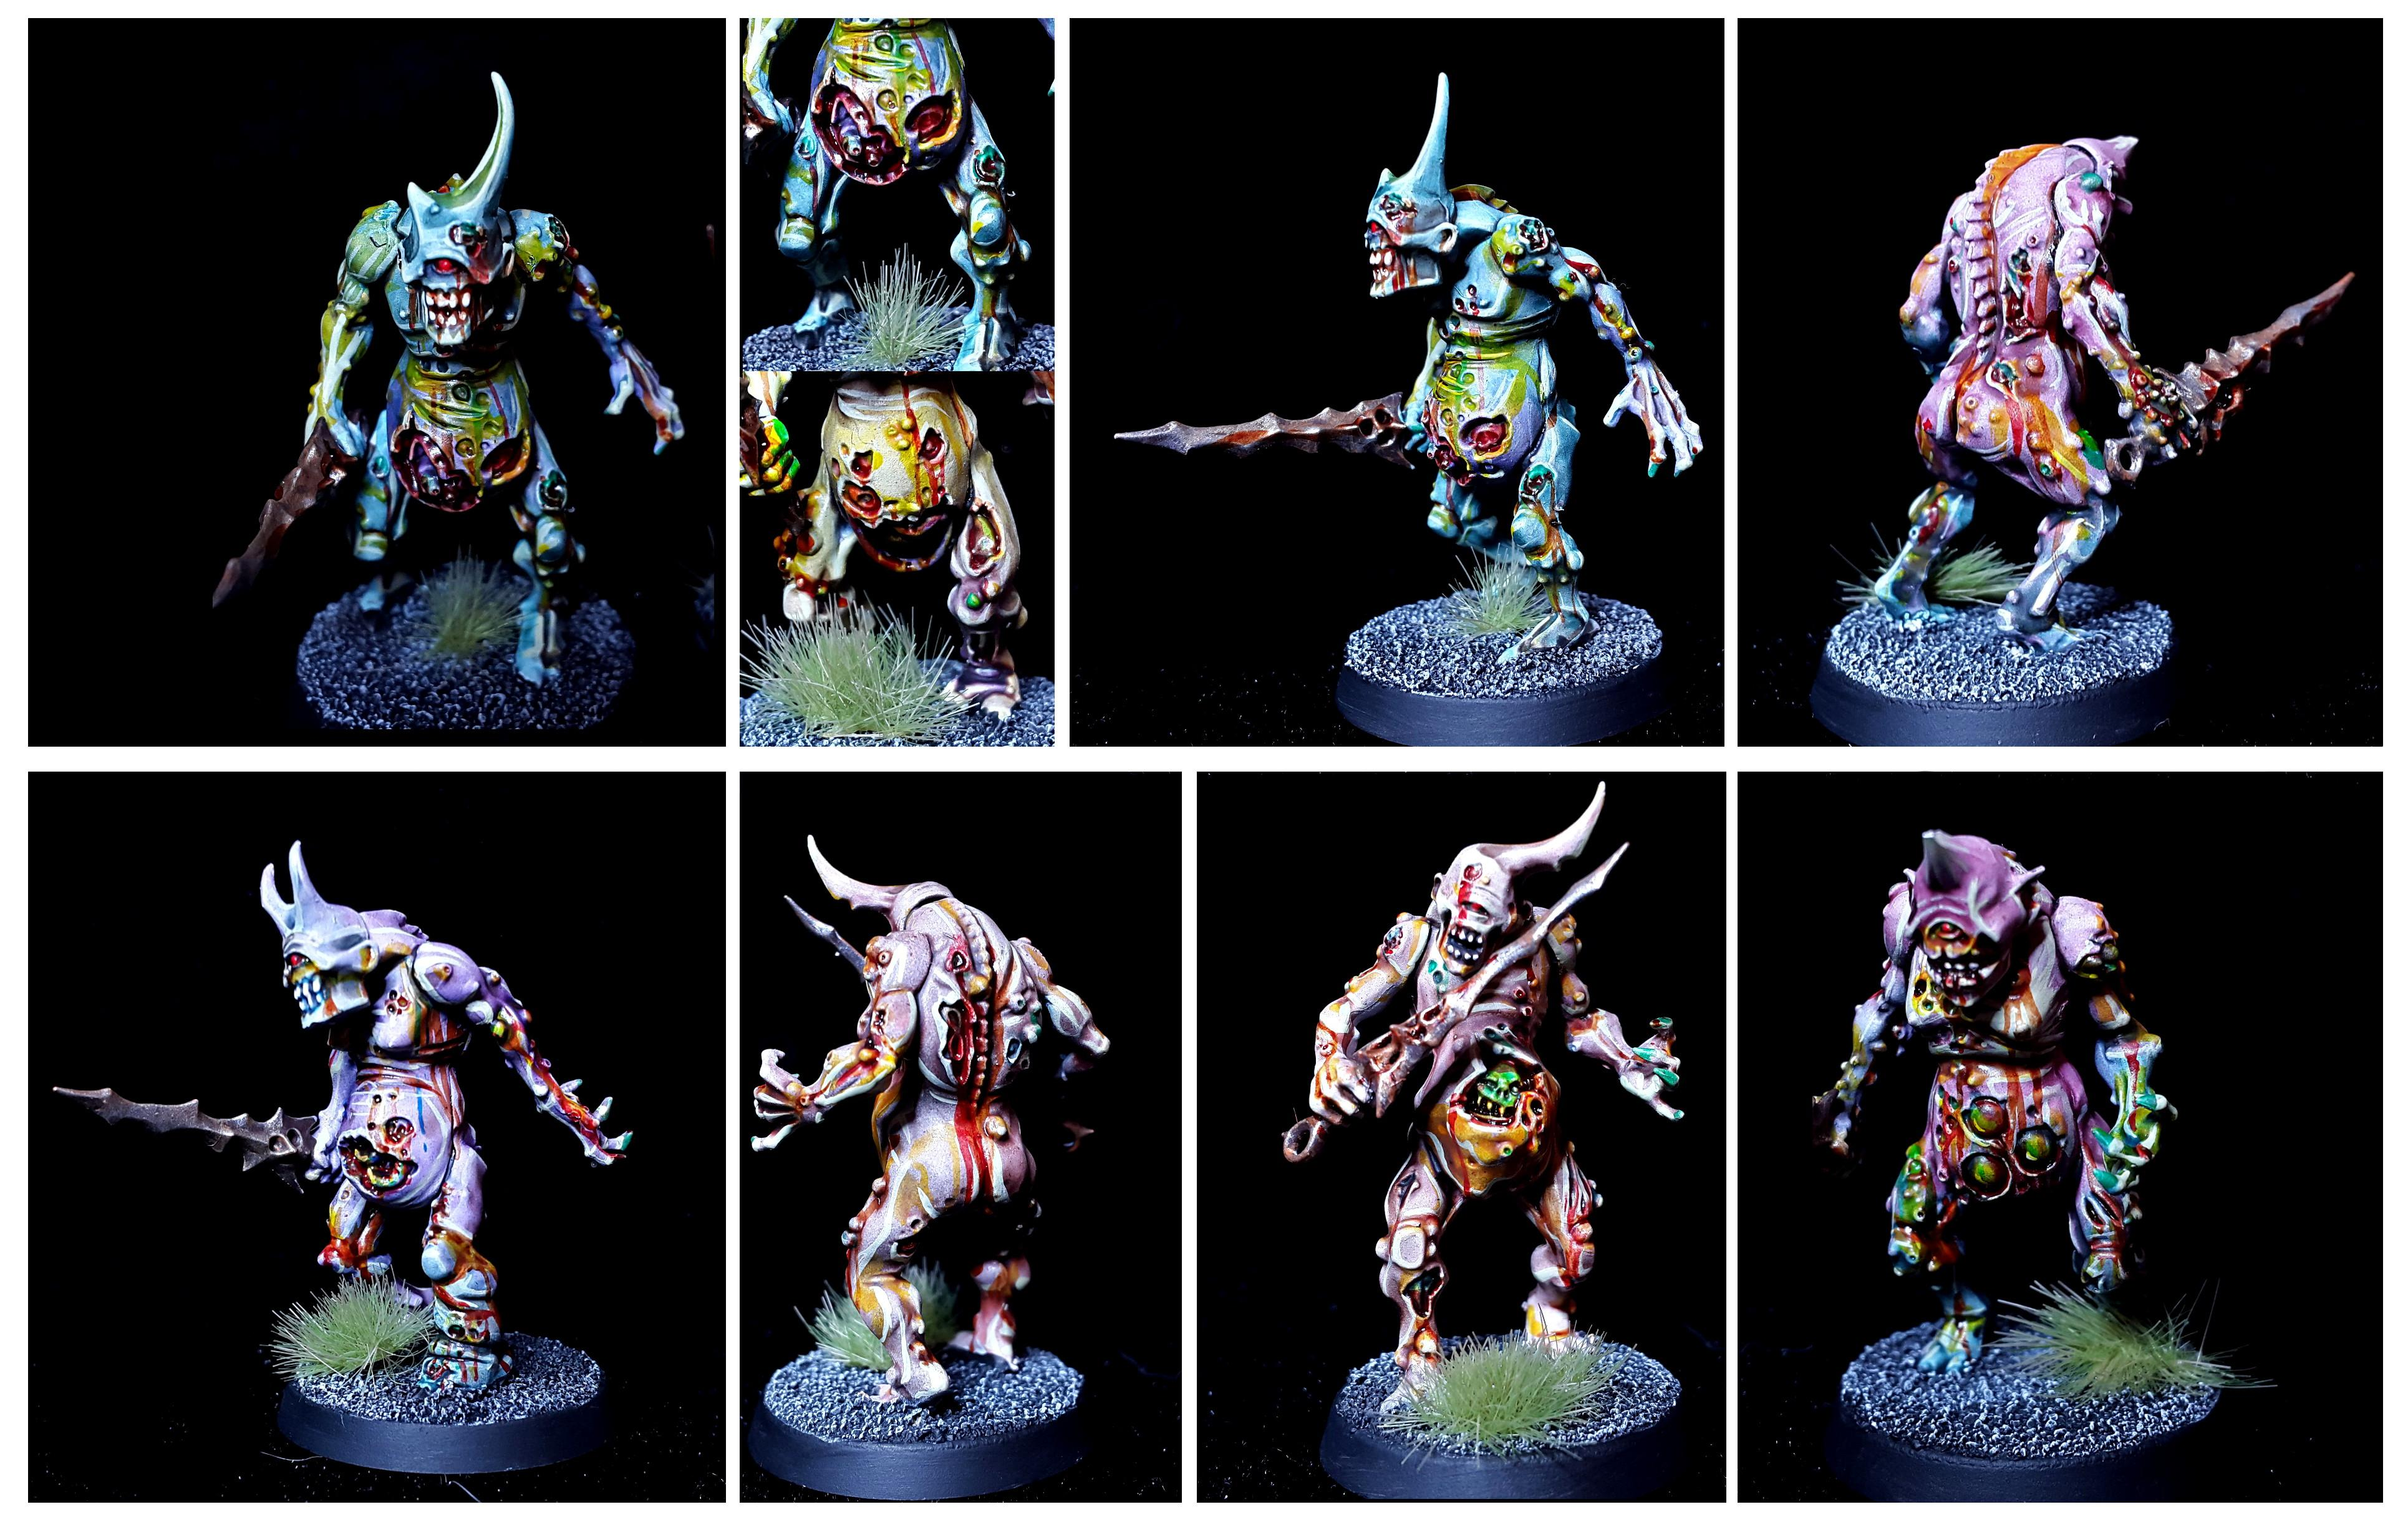 Bearer, Colour, Daemons, Nurgle, Plage, Plaguebearers, Rot, Sigmar, Warhammer 40,000, Warhammer Fantasy, Zombie